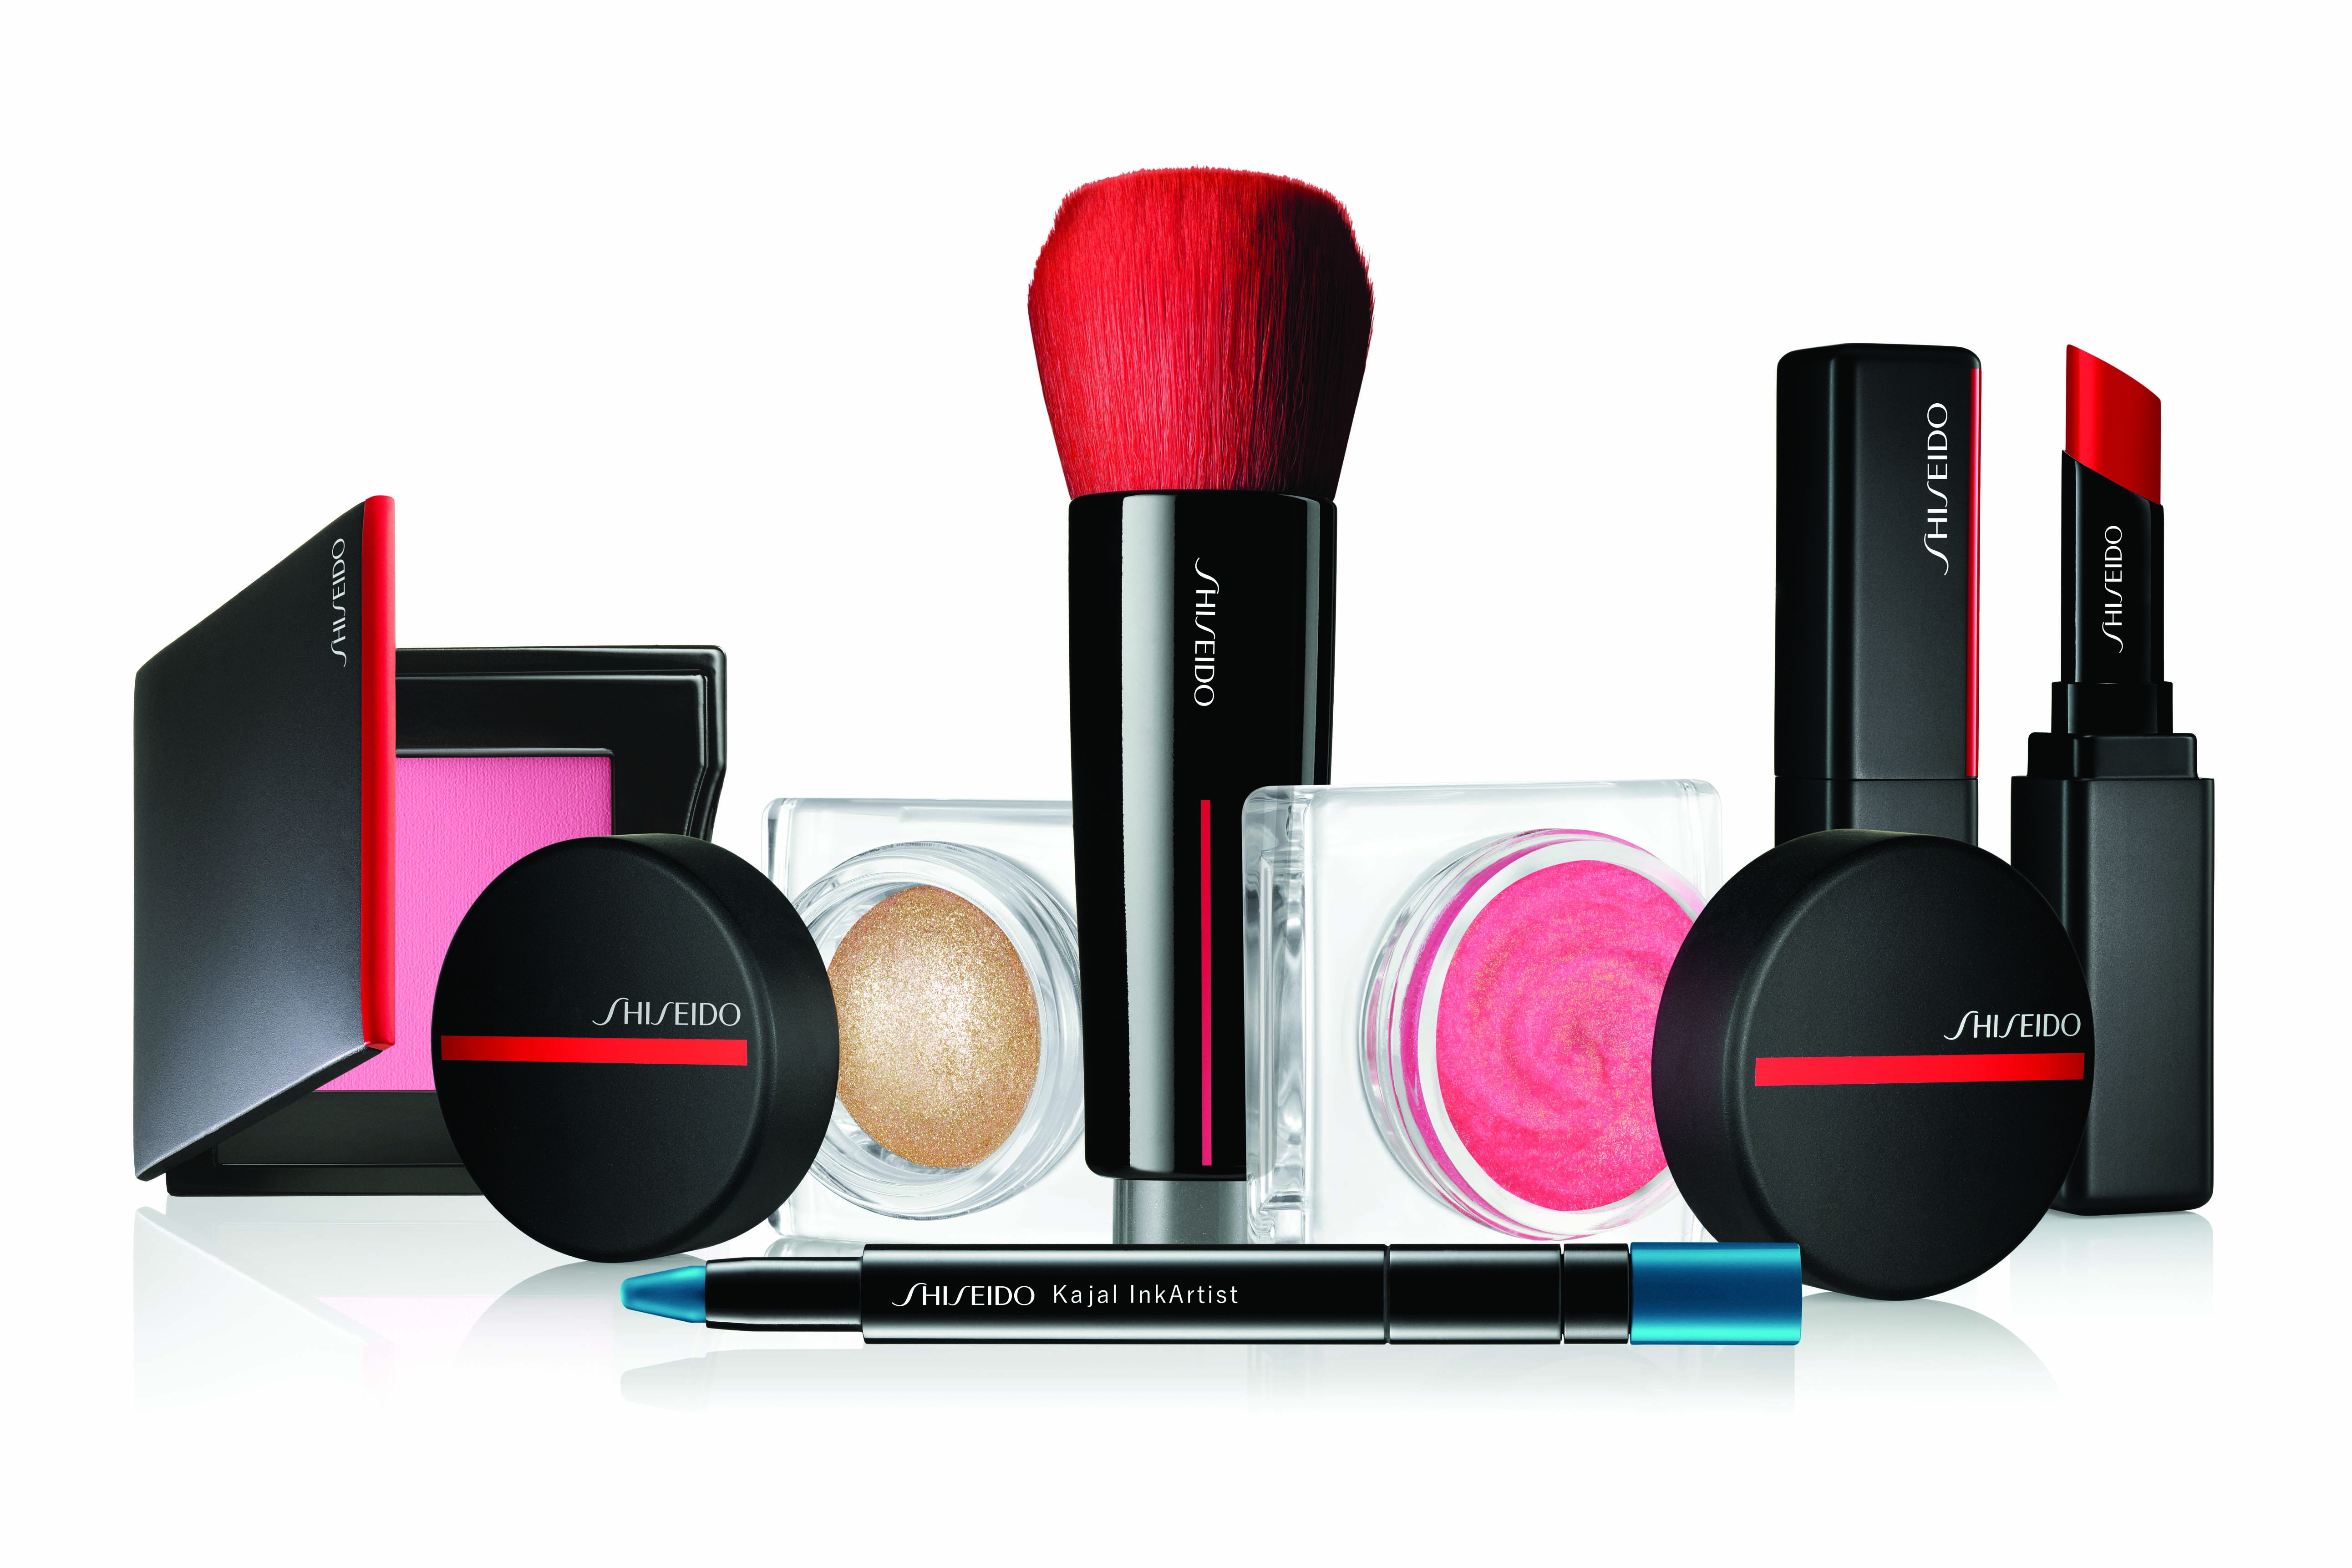 New Shiseido Makeup Collection